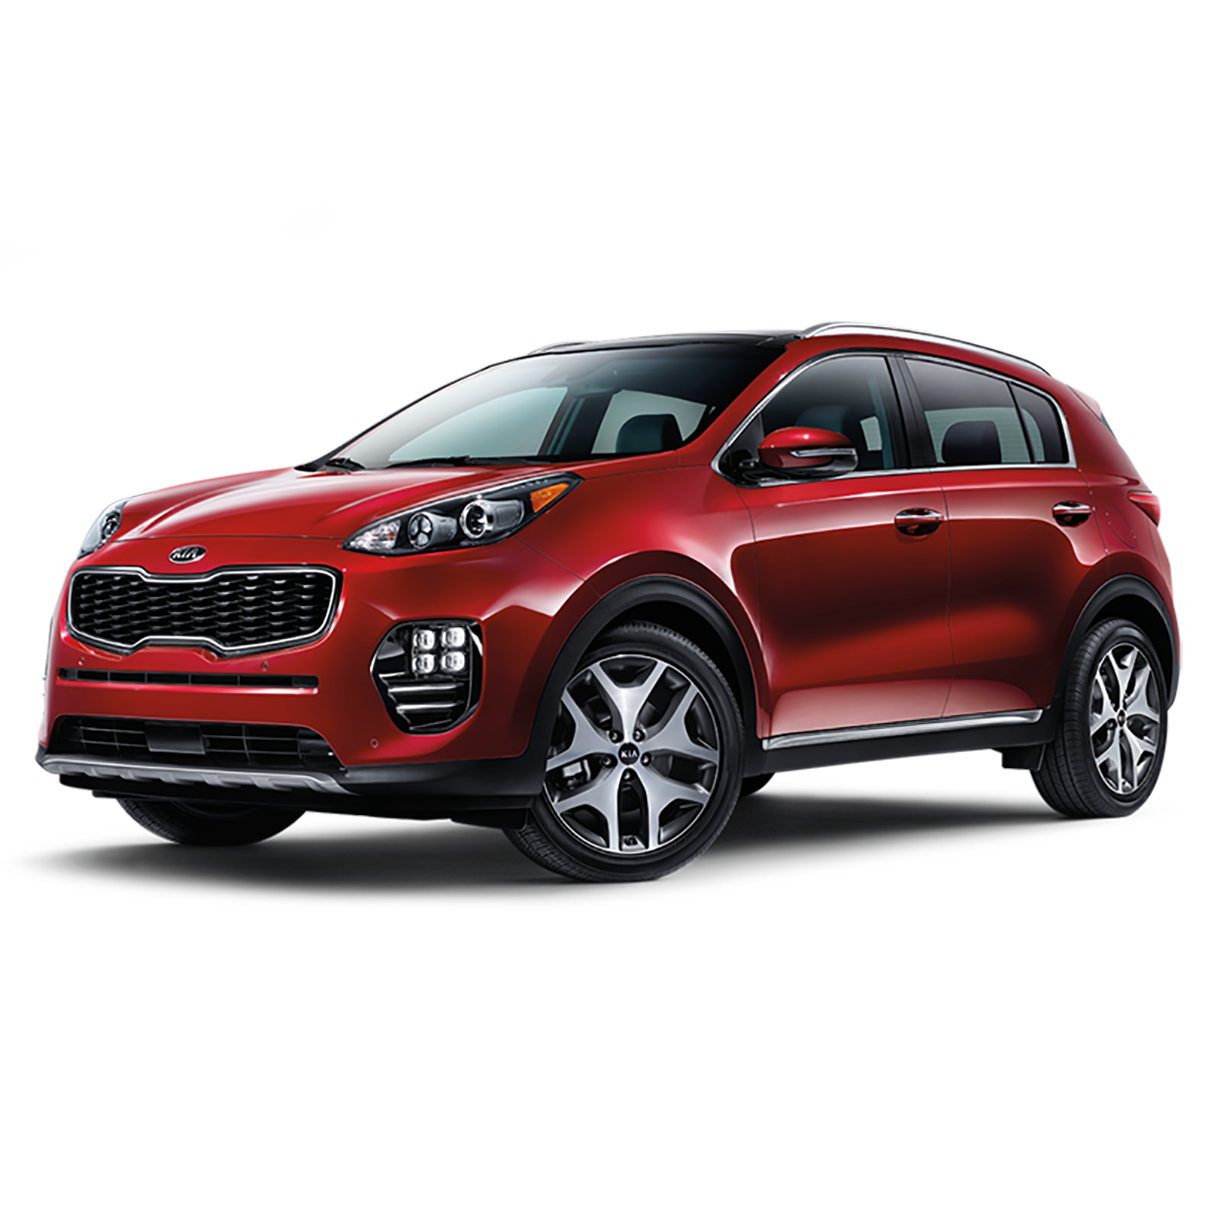 2018 kia sportage suv lease offers car lease clo. Black Bedroom Furniture Sets. Home Design Ideas